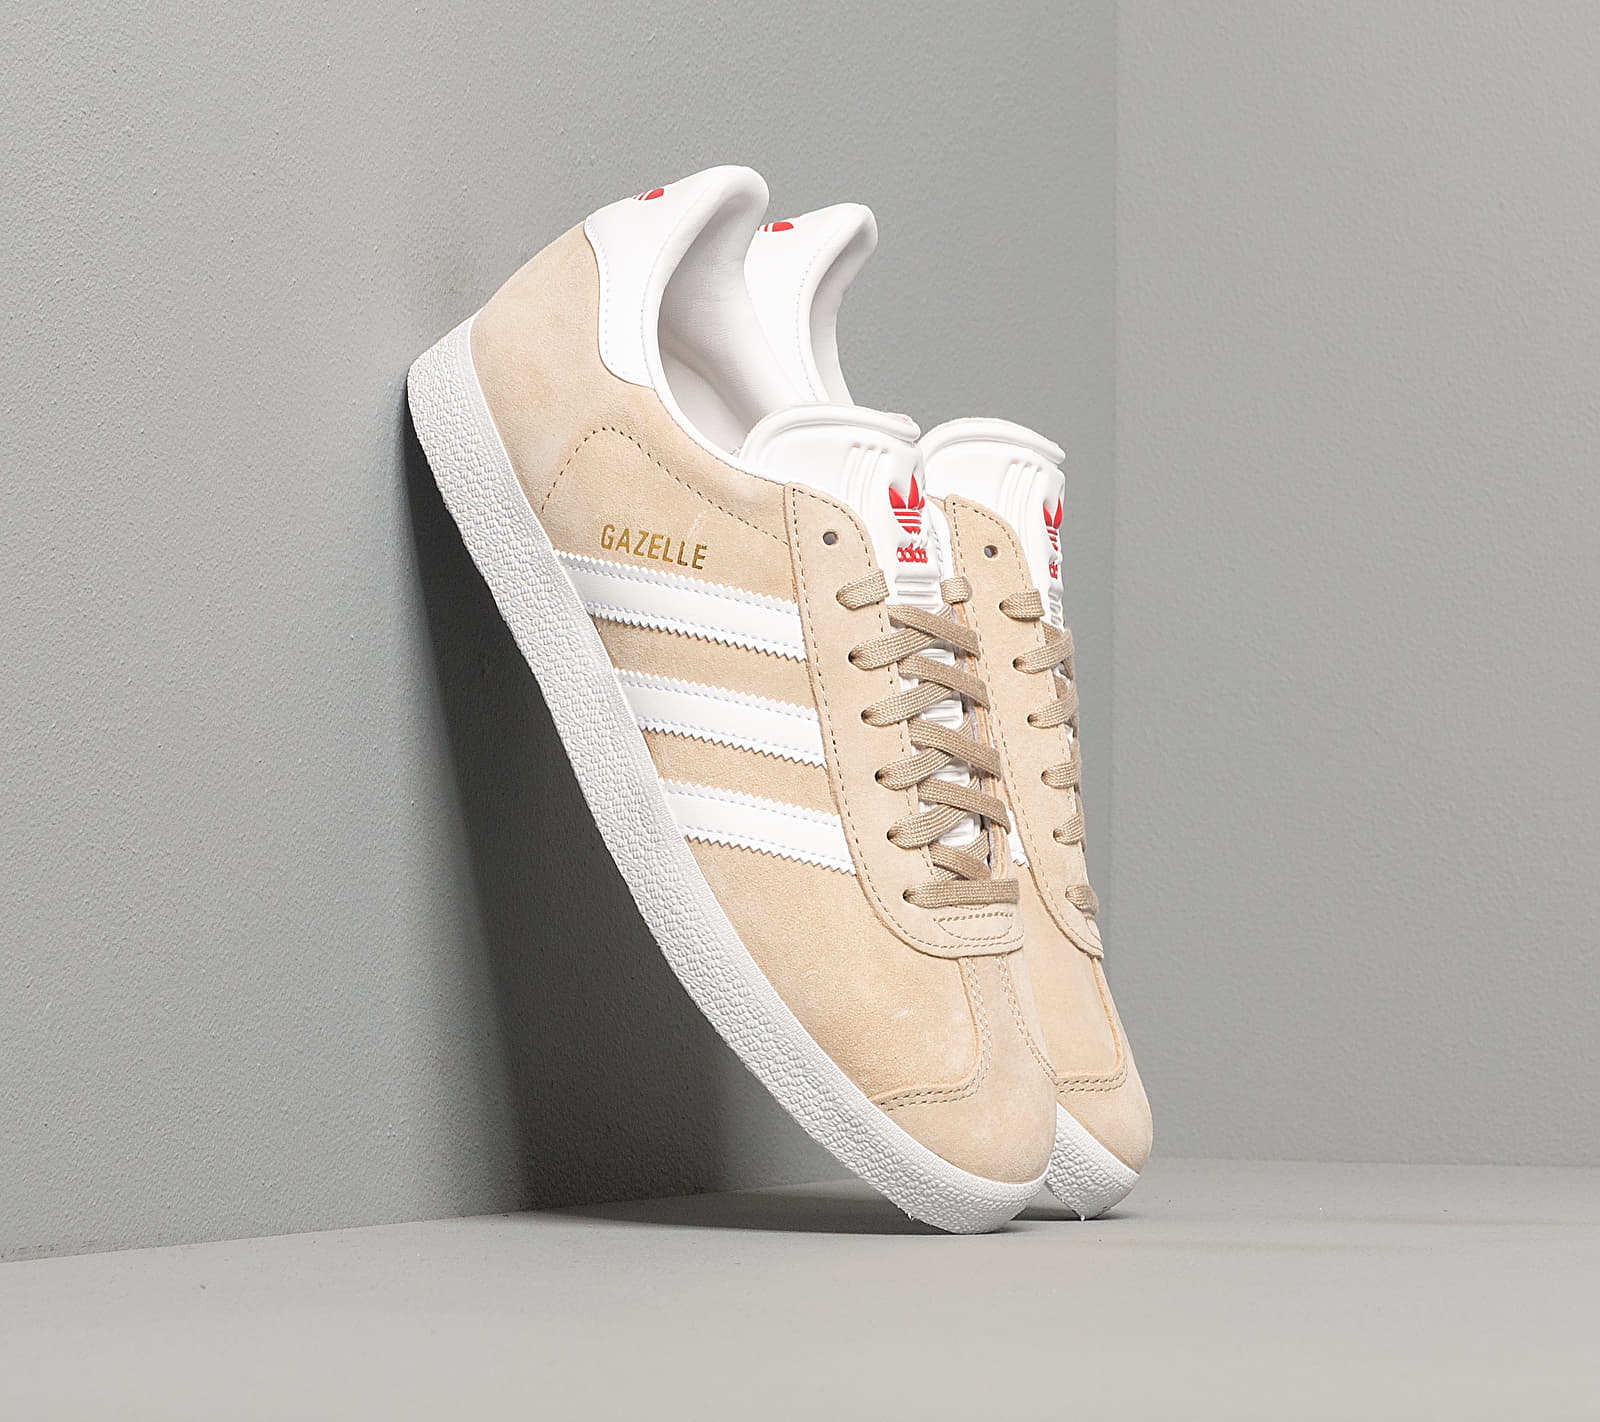 adidas Gazelle W Savanna/ Ftw White/ Glow Red EUR 37 1/3